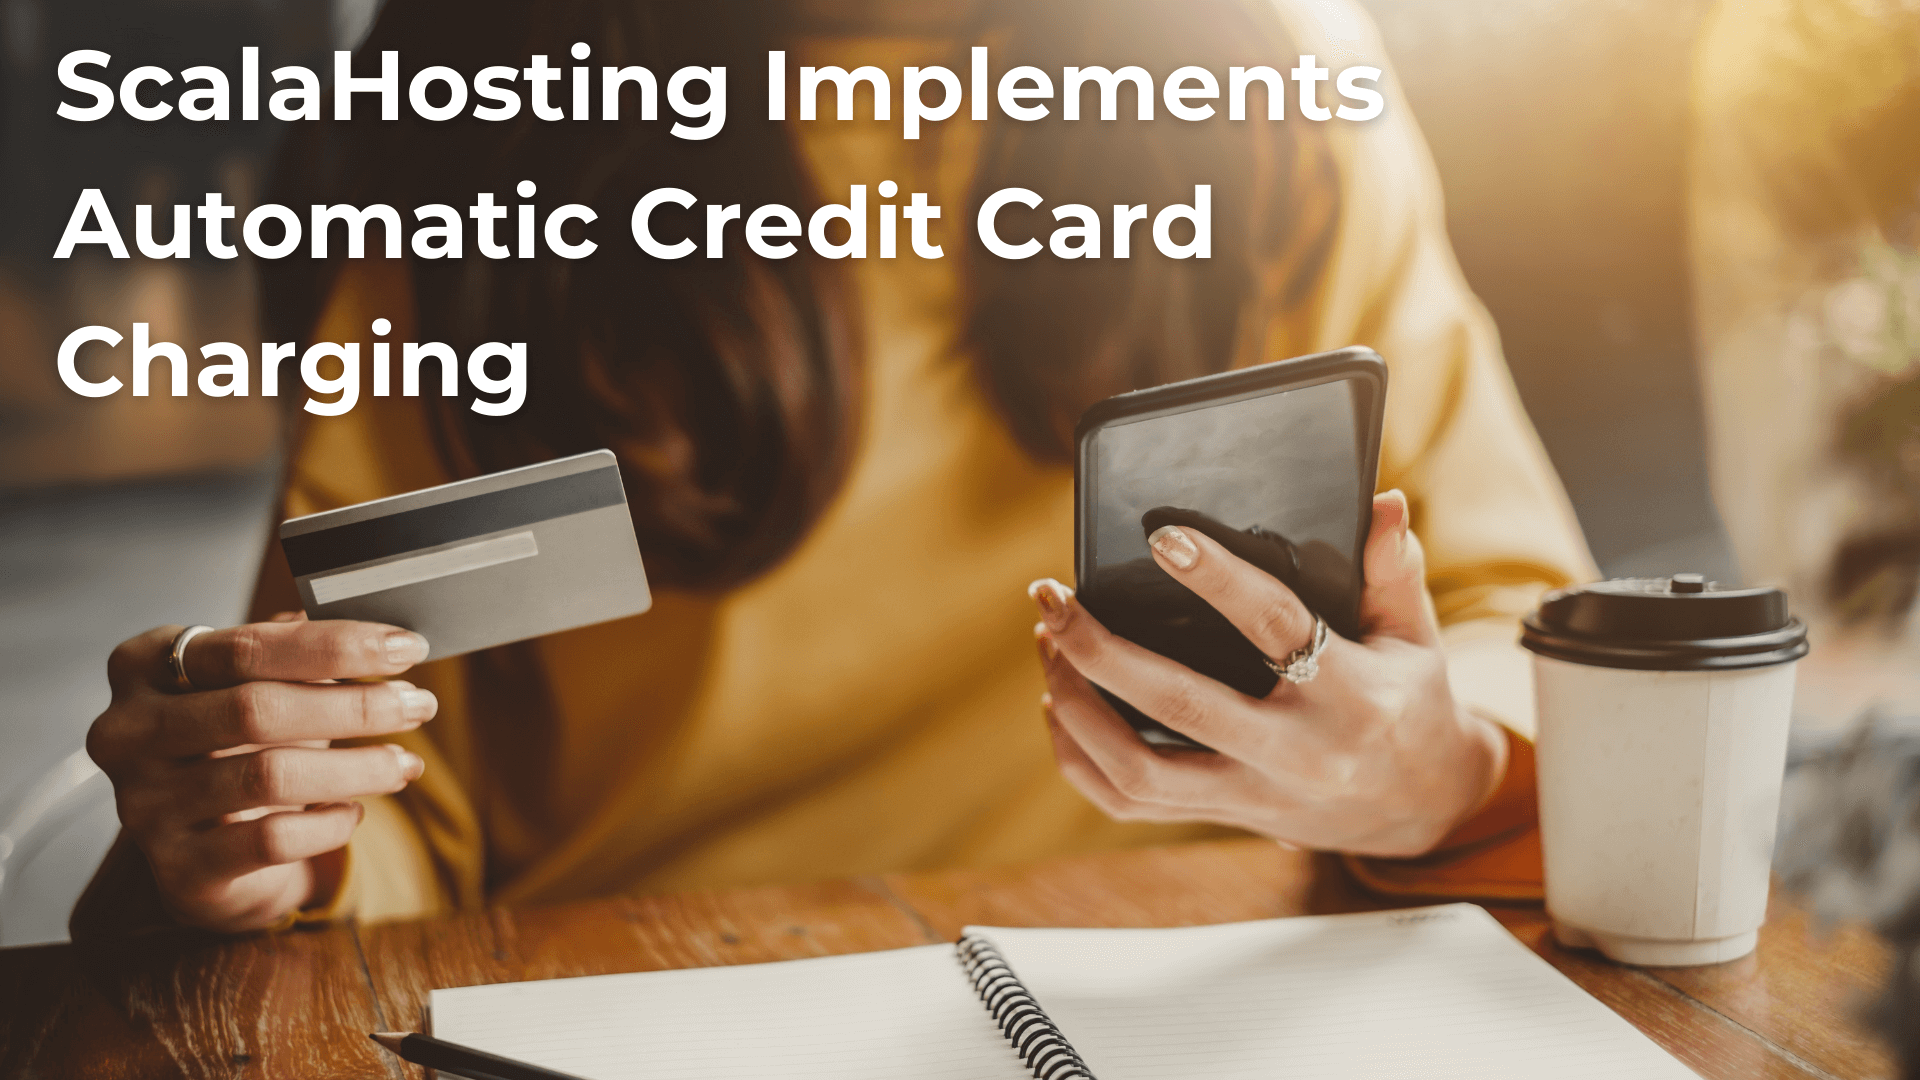 ScalaHosting Implements Automatic Credit Card Charging